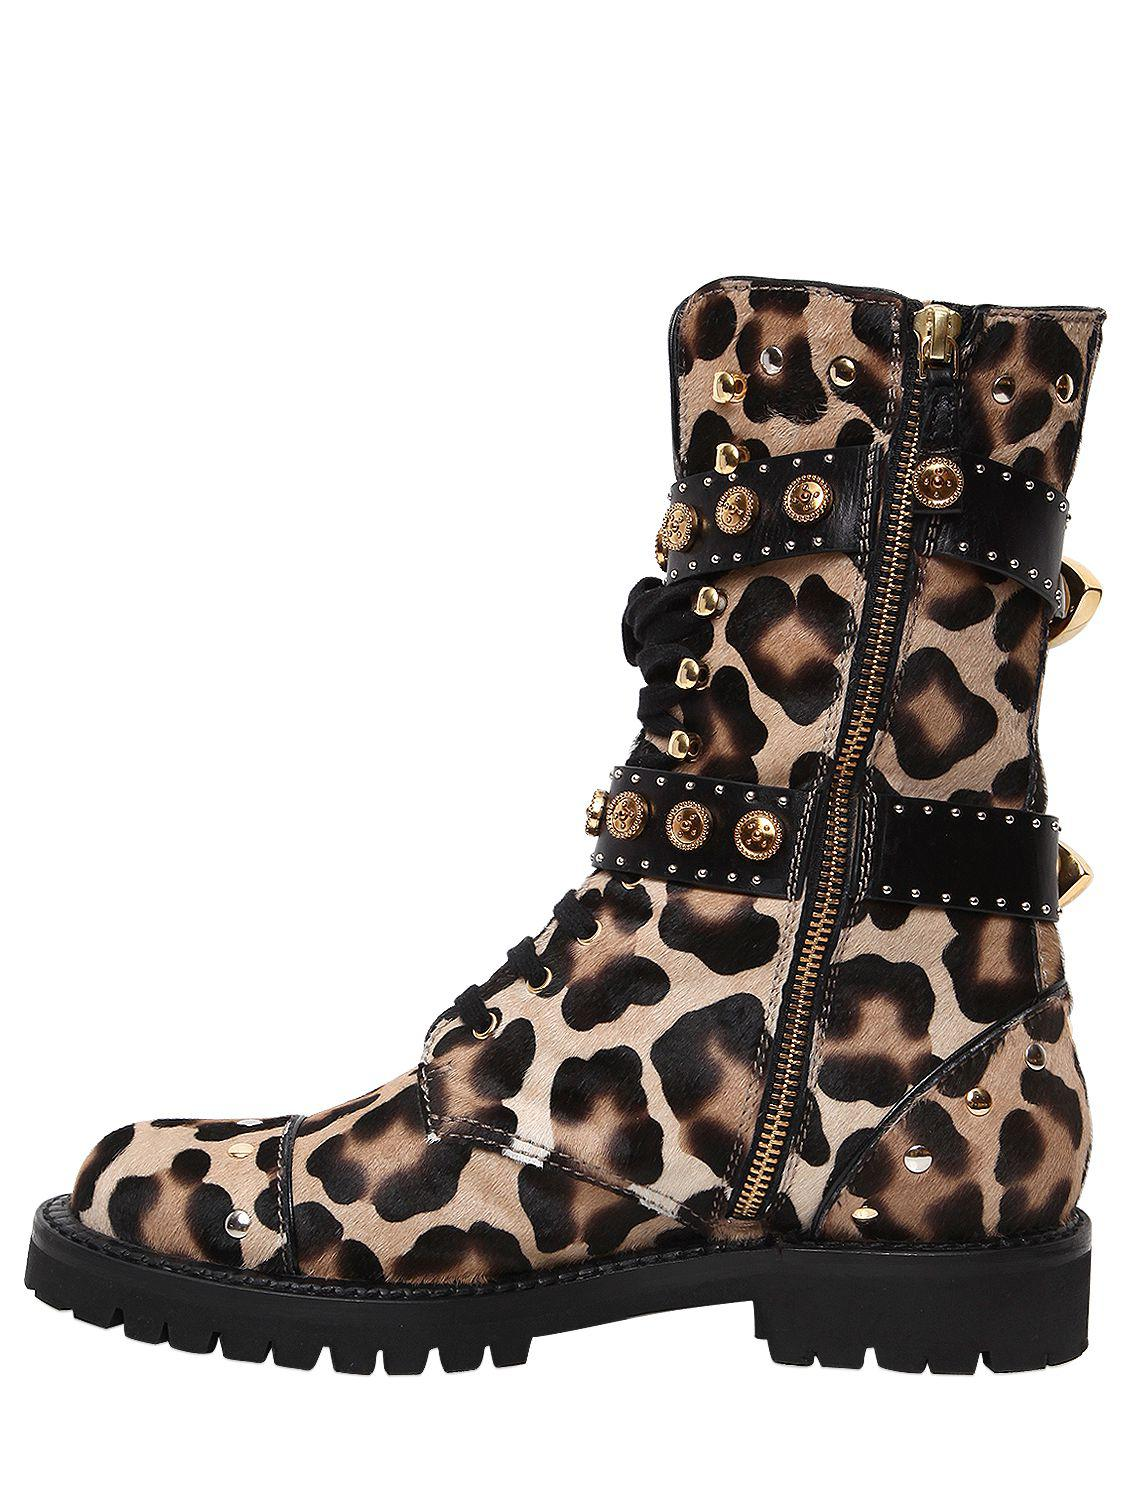 Fausto Puglisi Leather 30mm Leo Printed Ponyskin Combat Boots in Leopard (Brown)